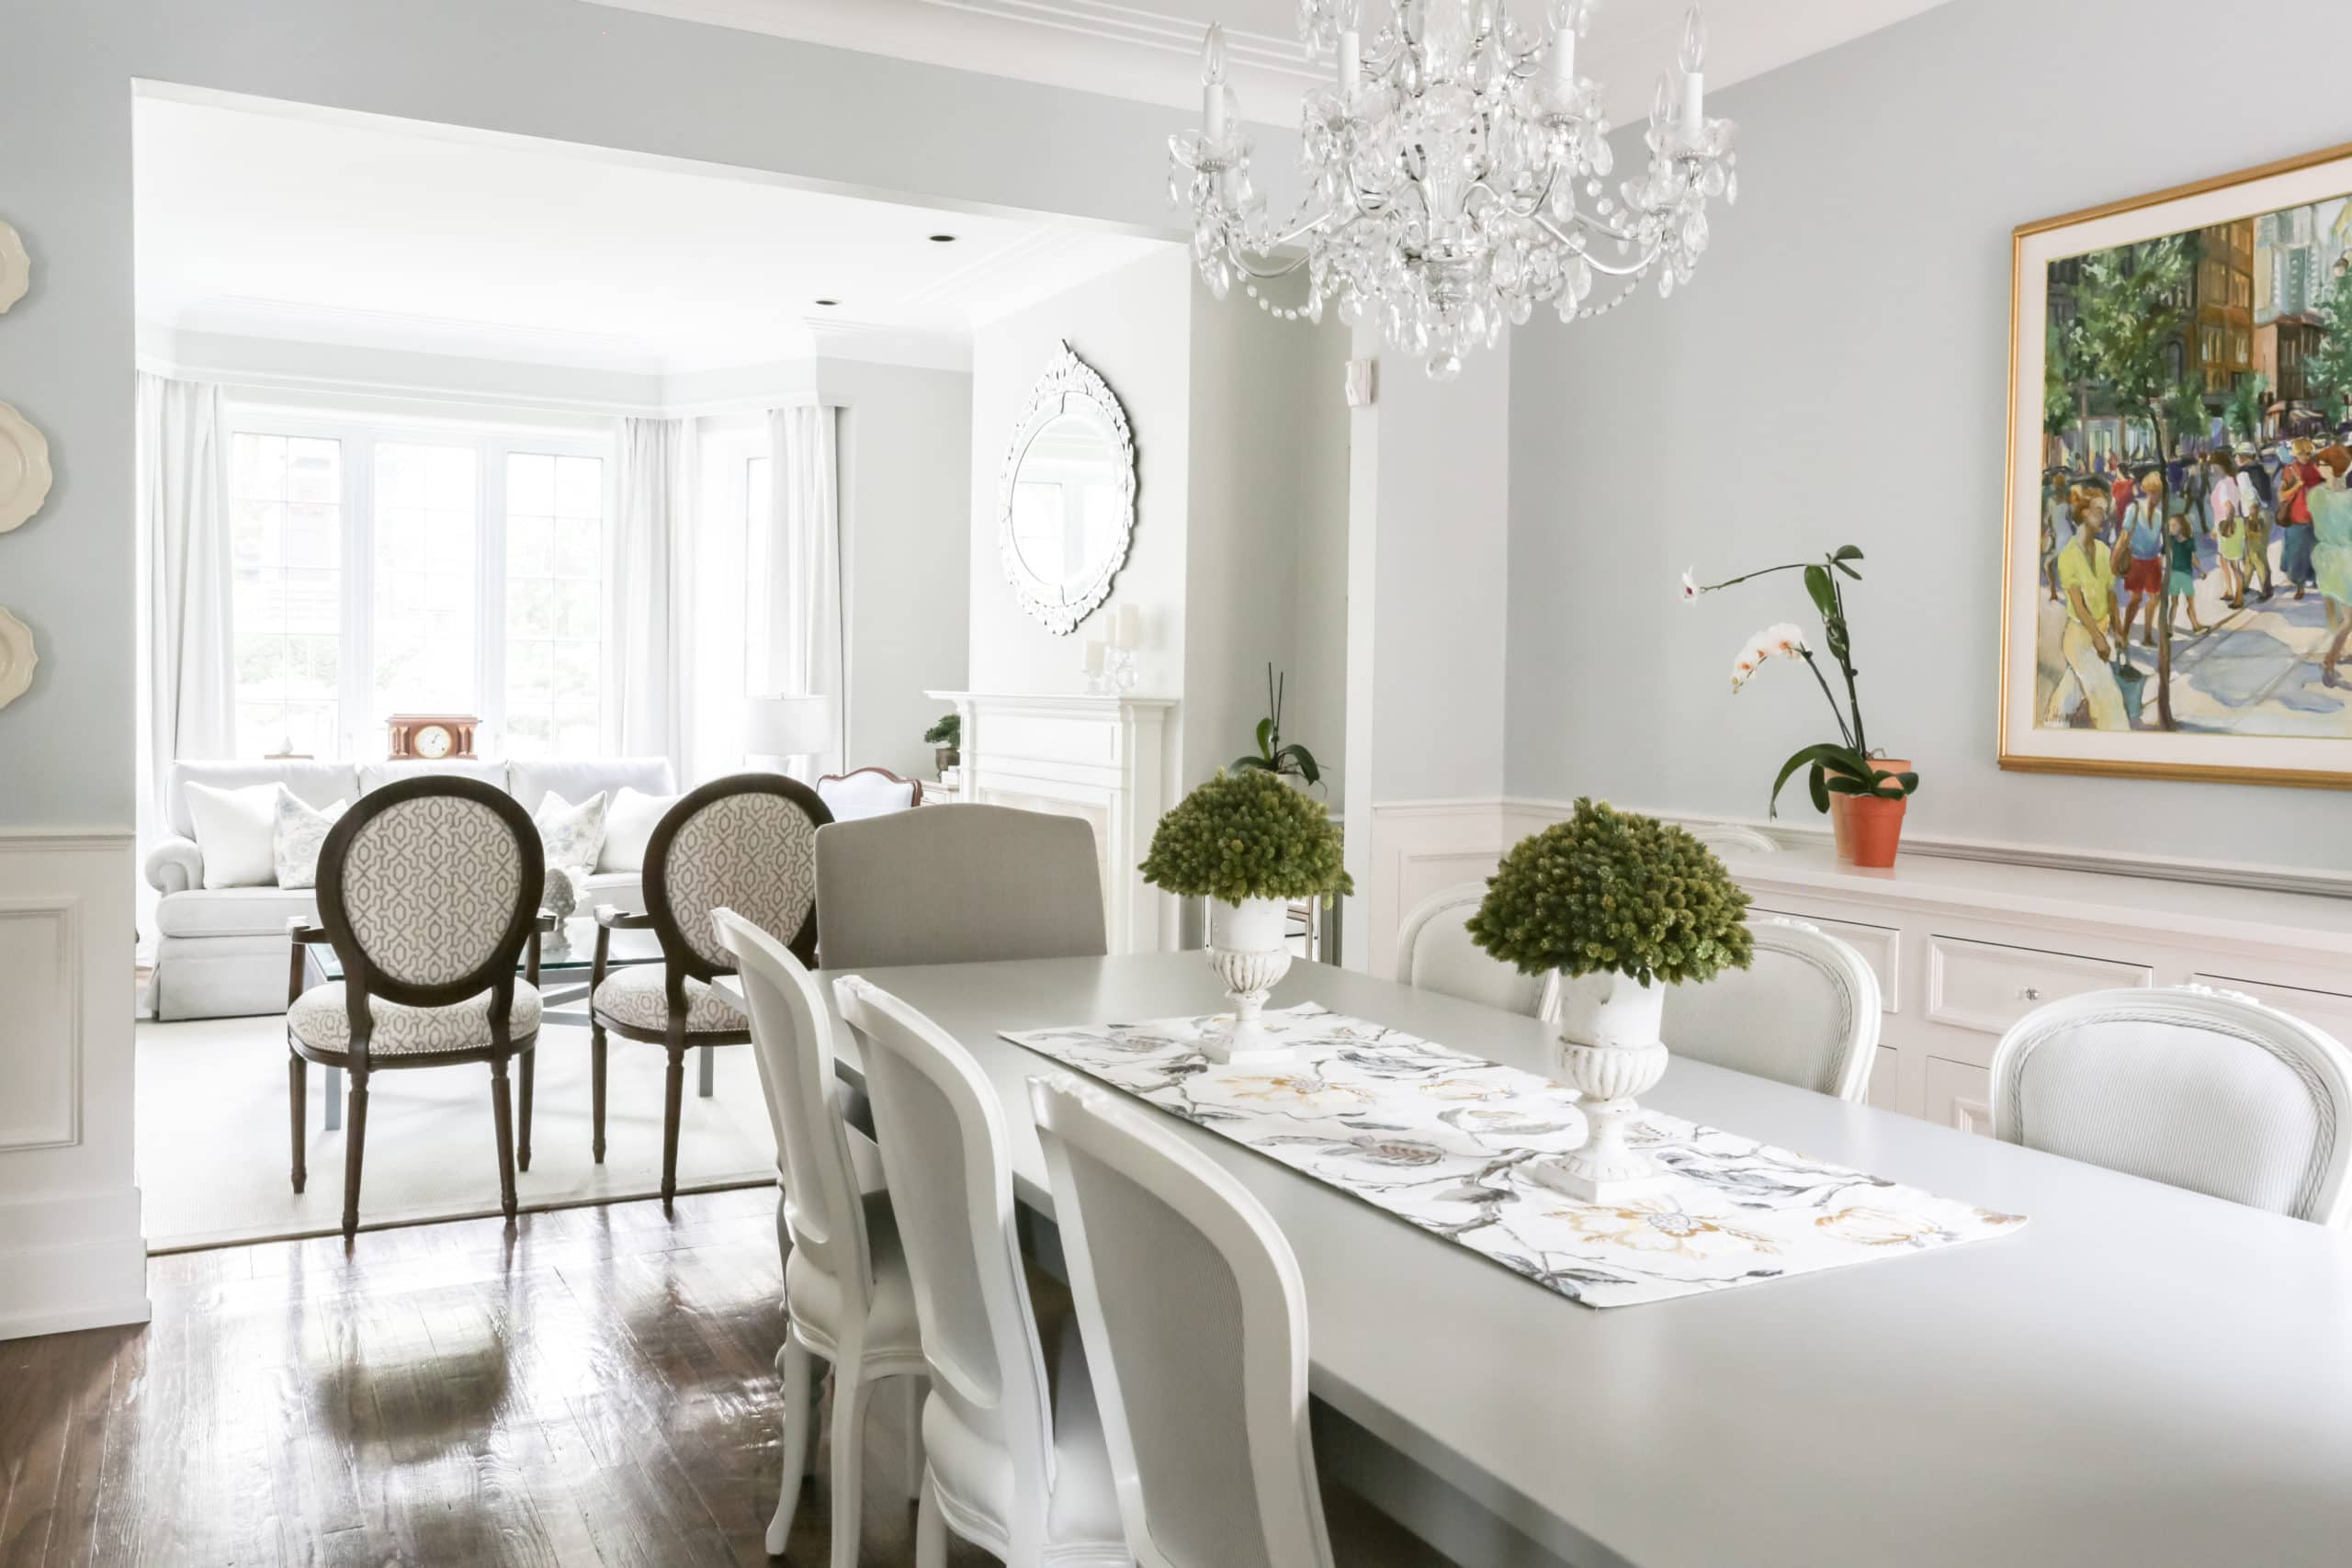 Bright dining room with a large rectangular table with a small fancy chandelier above it